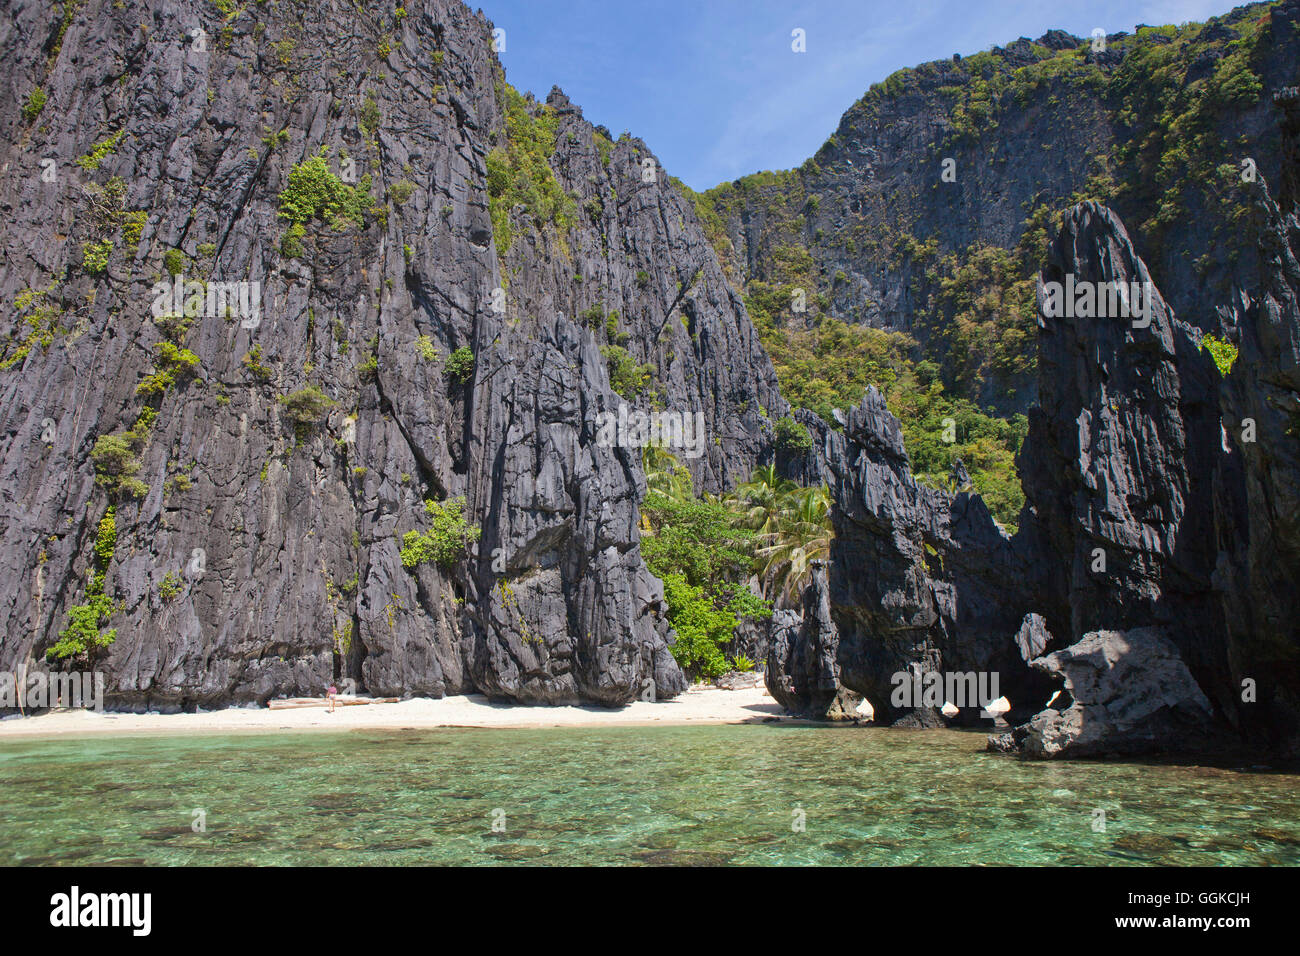 Bizarre rock formations in the archipelago Bacuit near El Nido, Palawan Island, South China Sea, Philippines, Asia - Stock Image